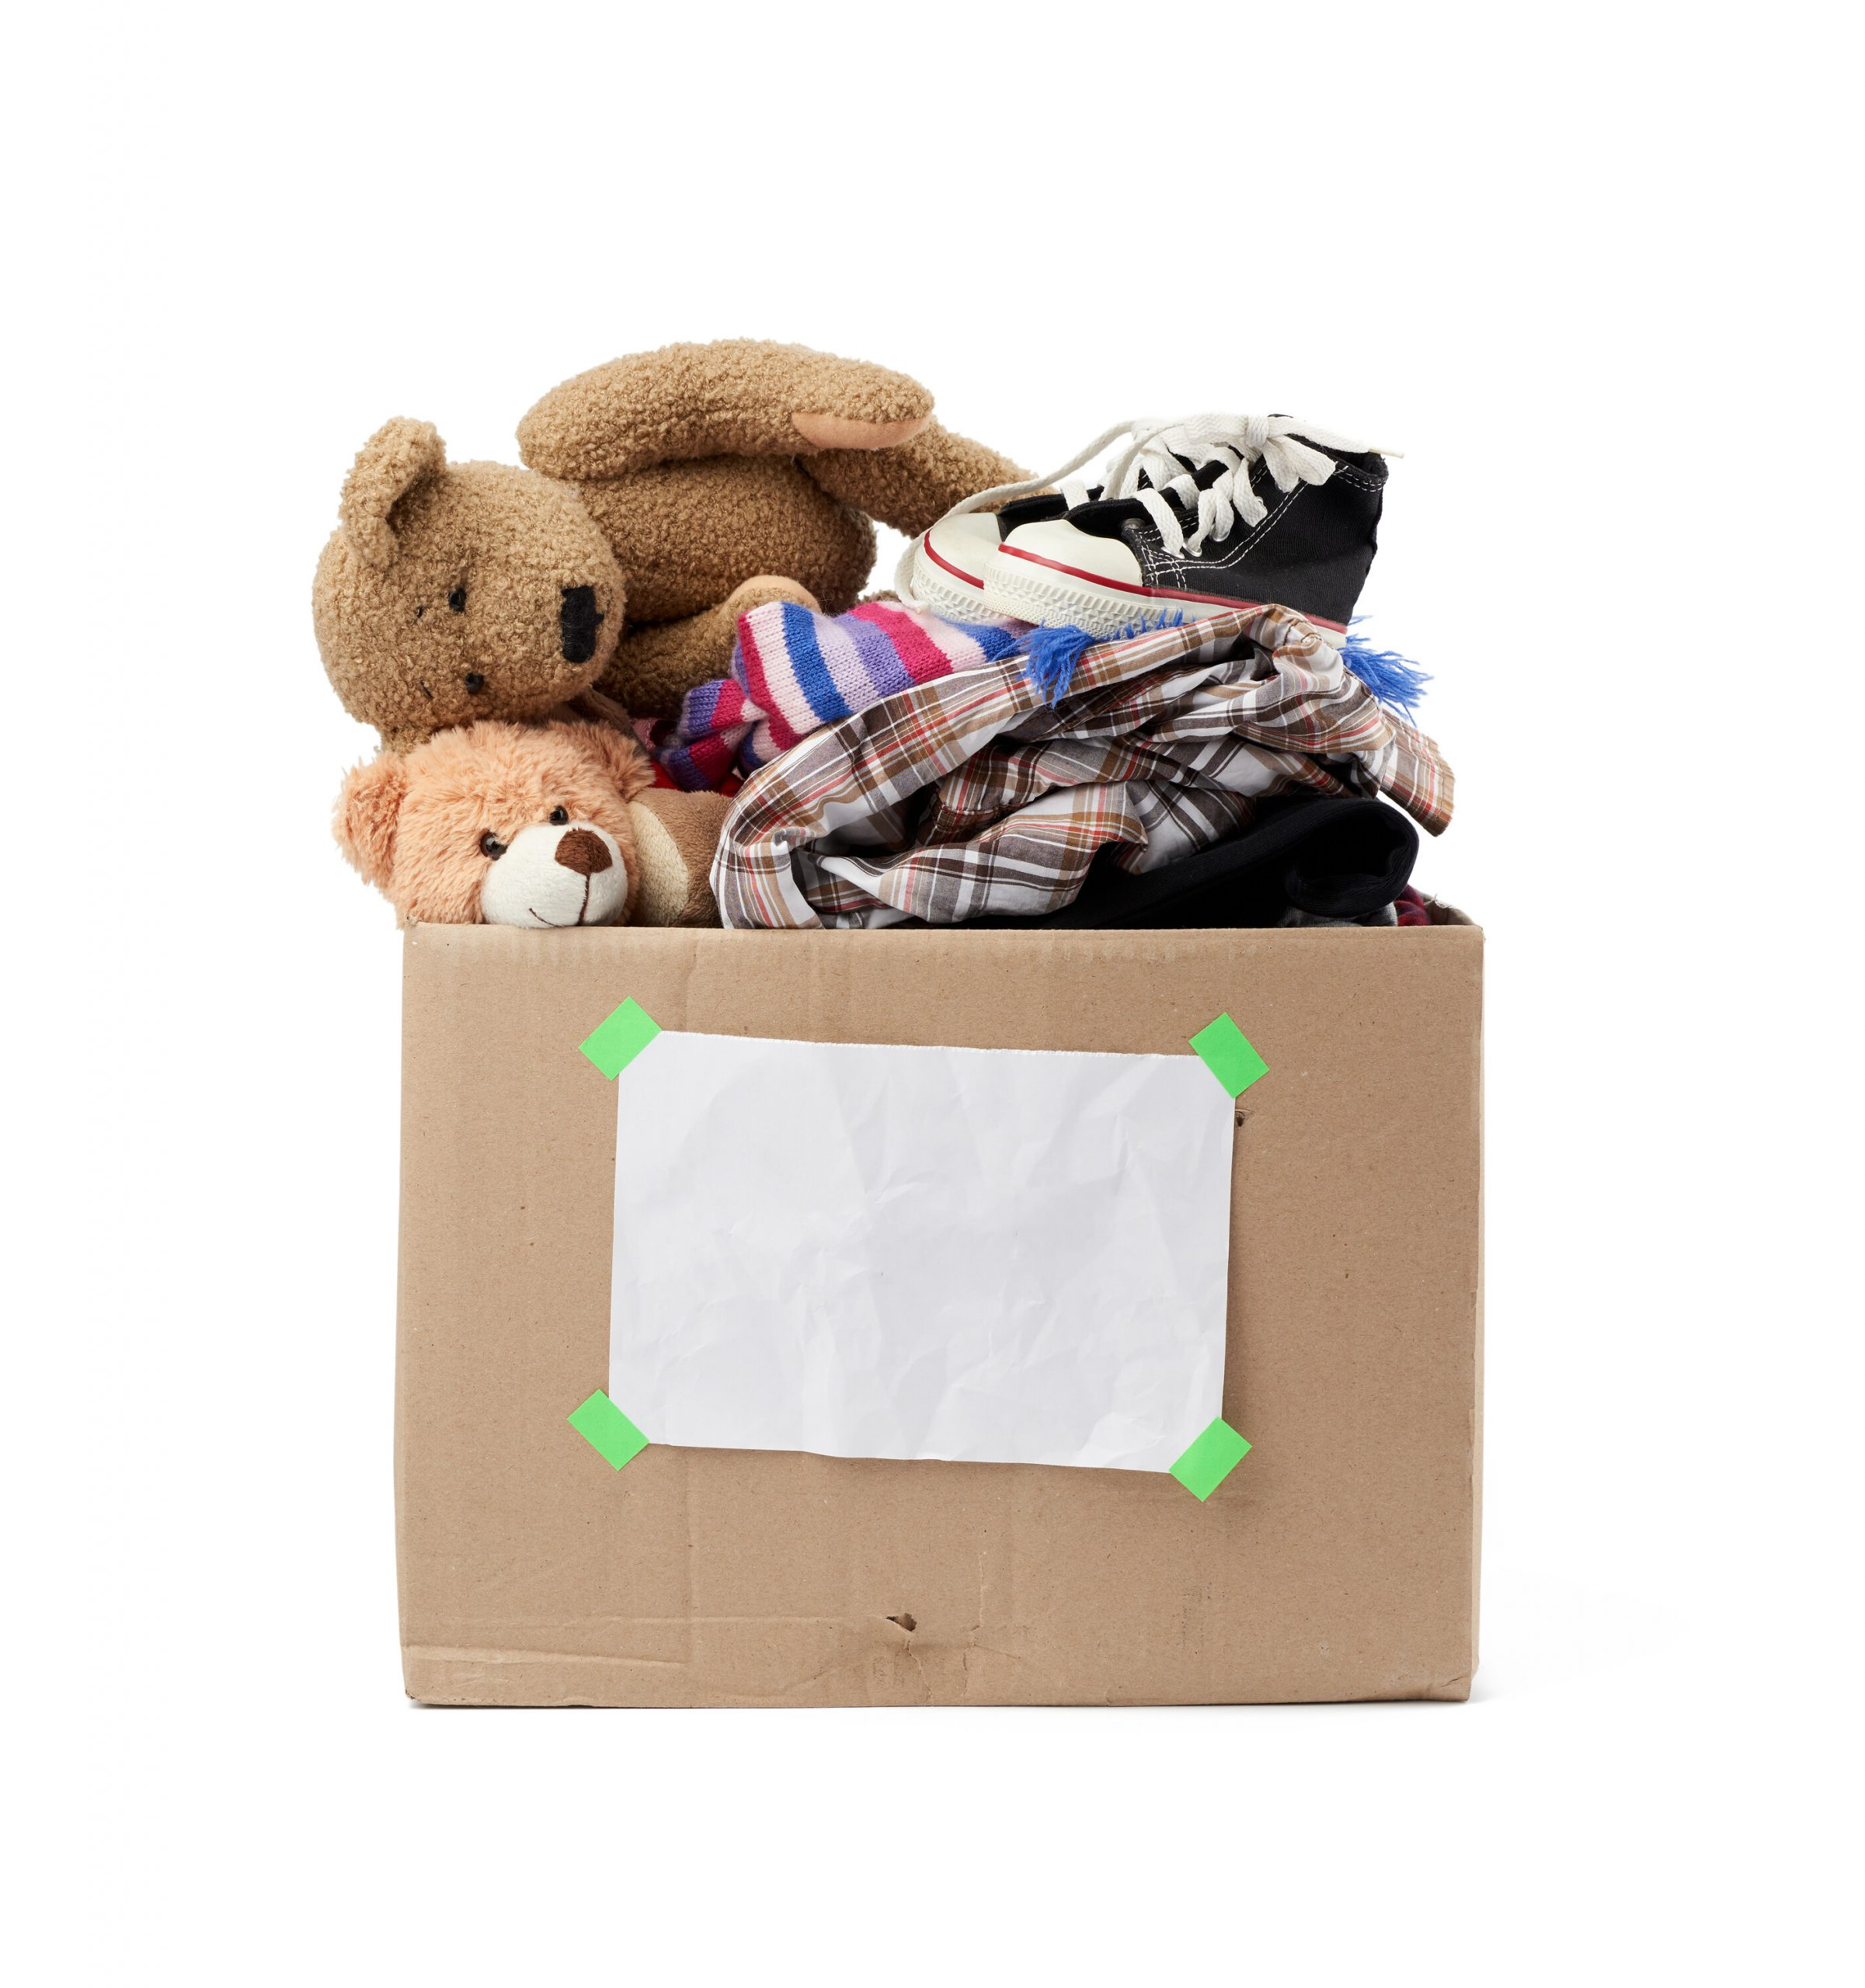 rown cardboard box with things, toys isolated on white background, concept of moving, volunteering and help